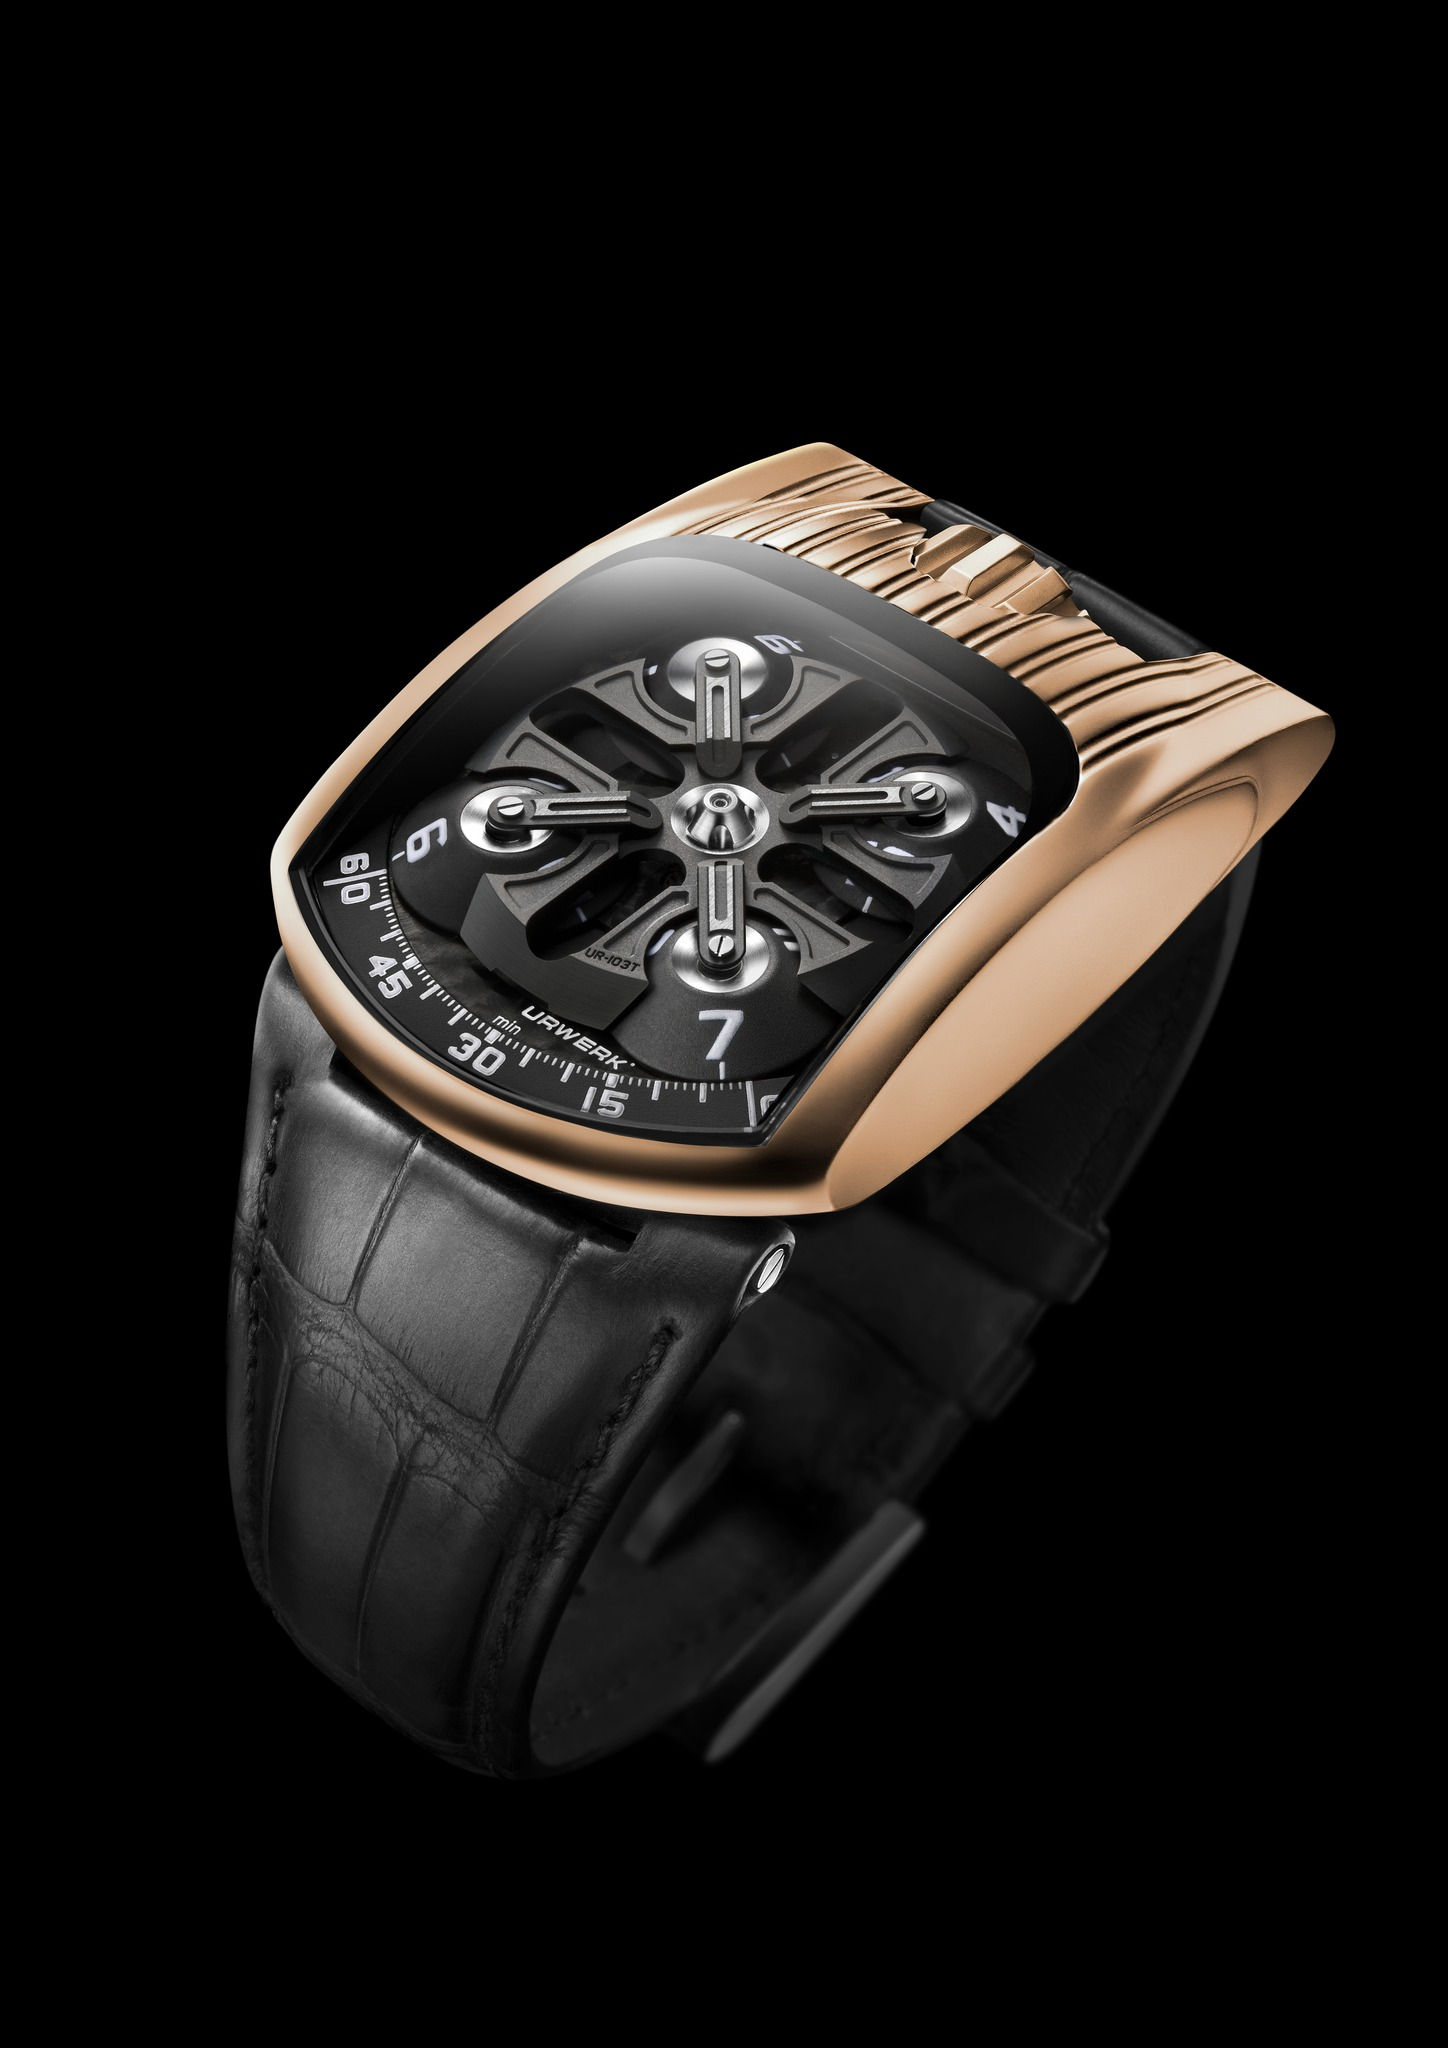 Replica Urwerk UR-103T Red Gold Watch